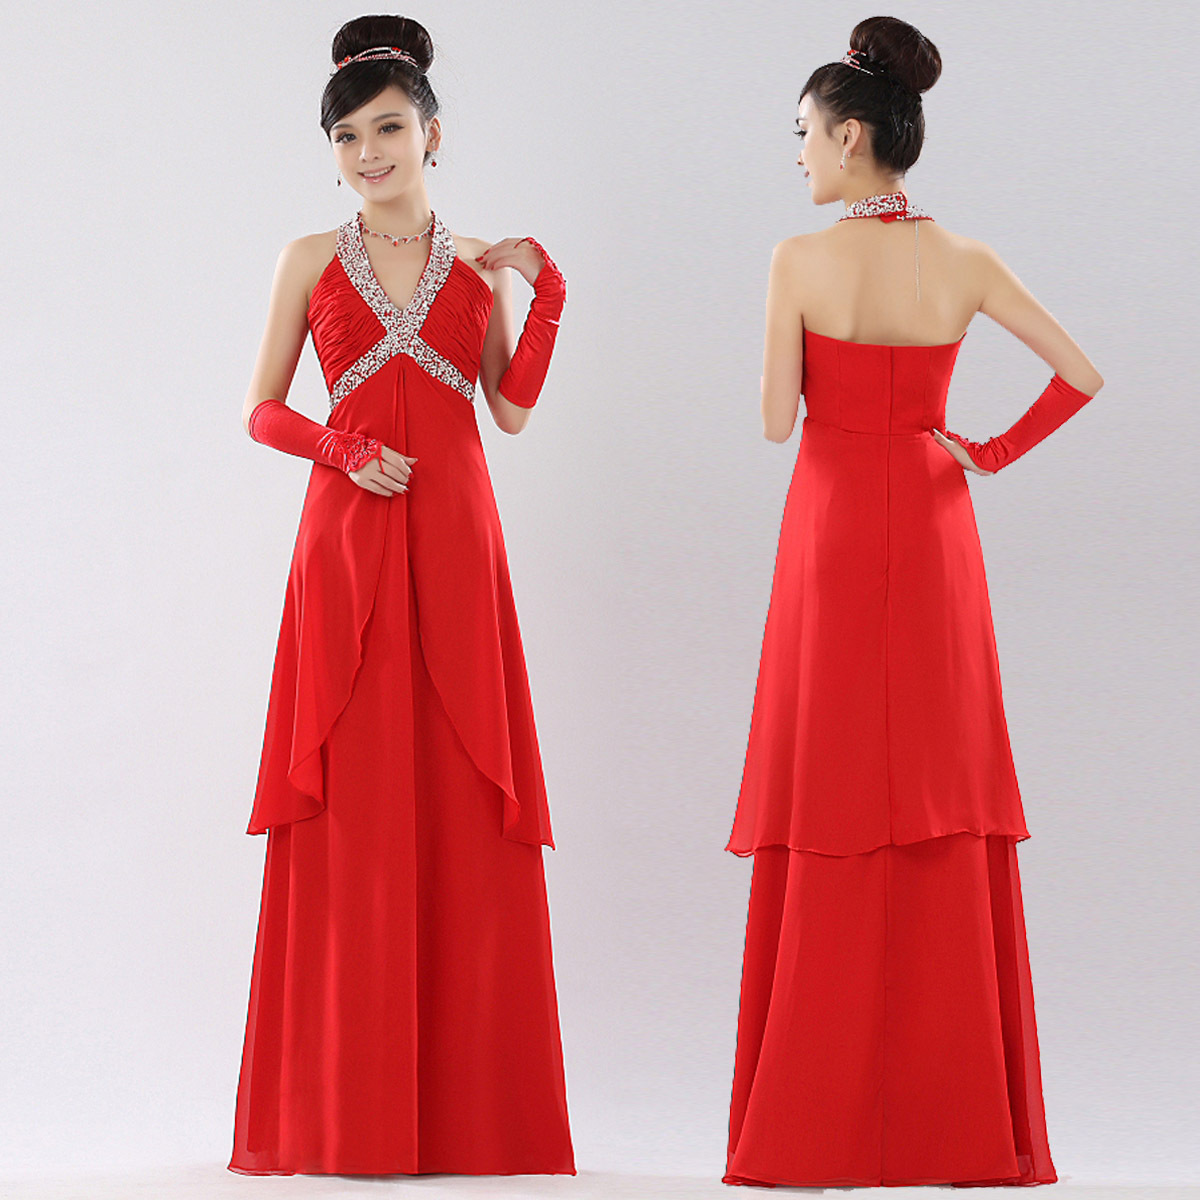 free shipping, The bride red qi in wedding married star evening dress l-060